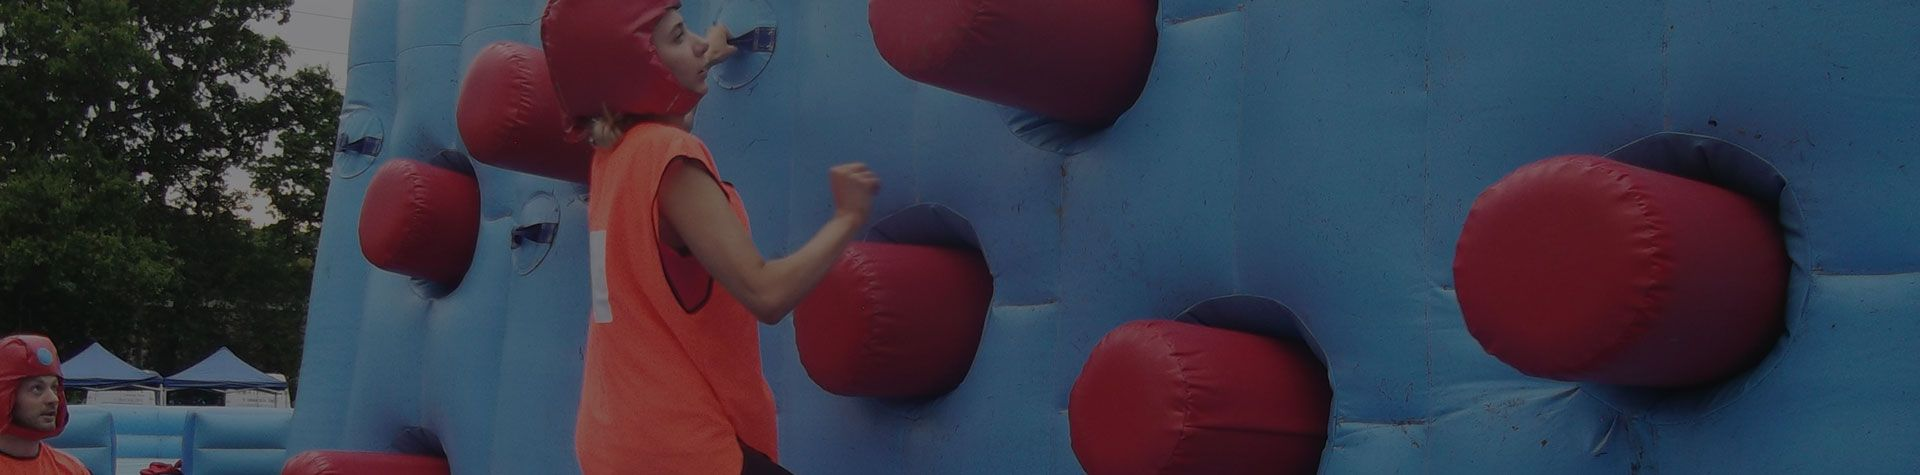 girl trying to get across Totally Wiped Out inflatable